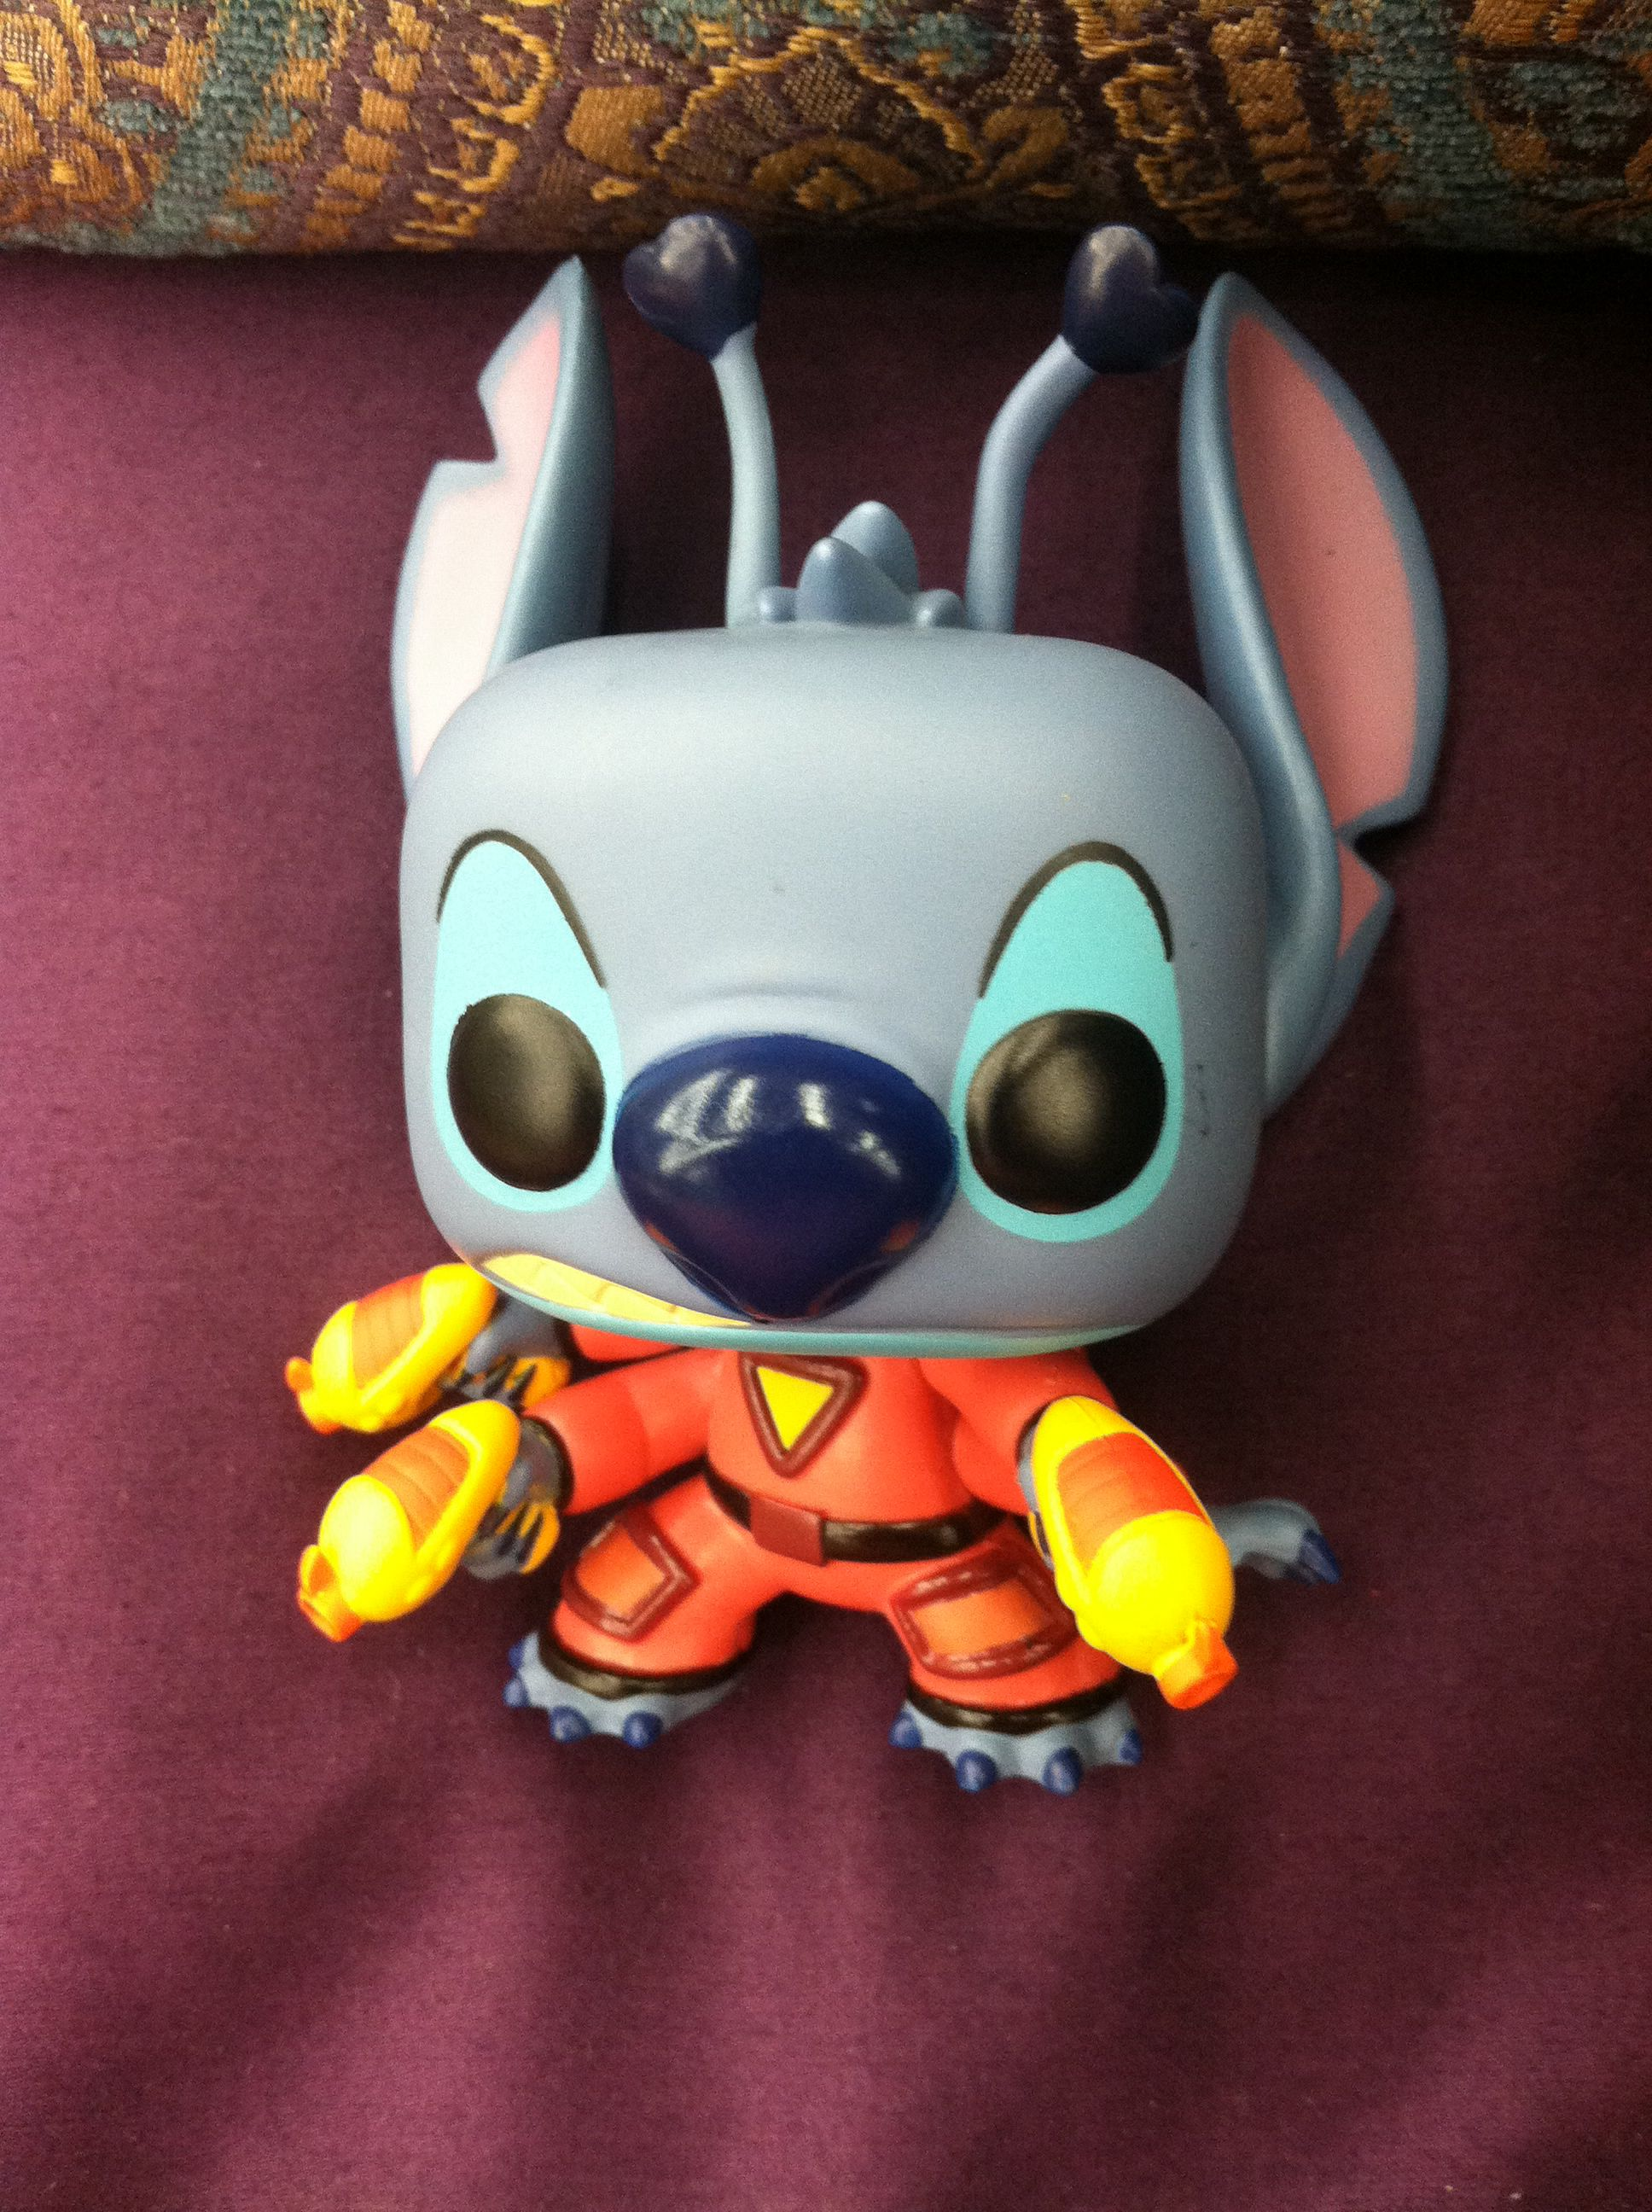 OMG... STITCH so adorable. MUST HAVE!